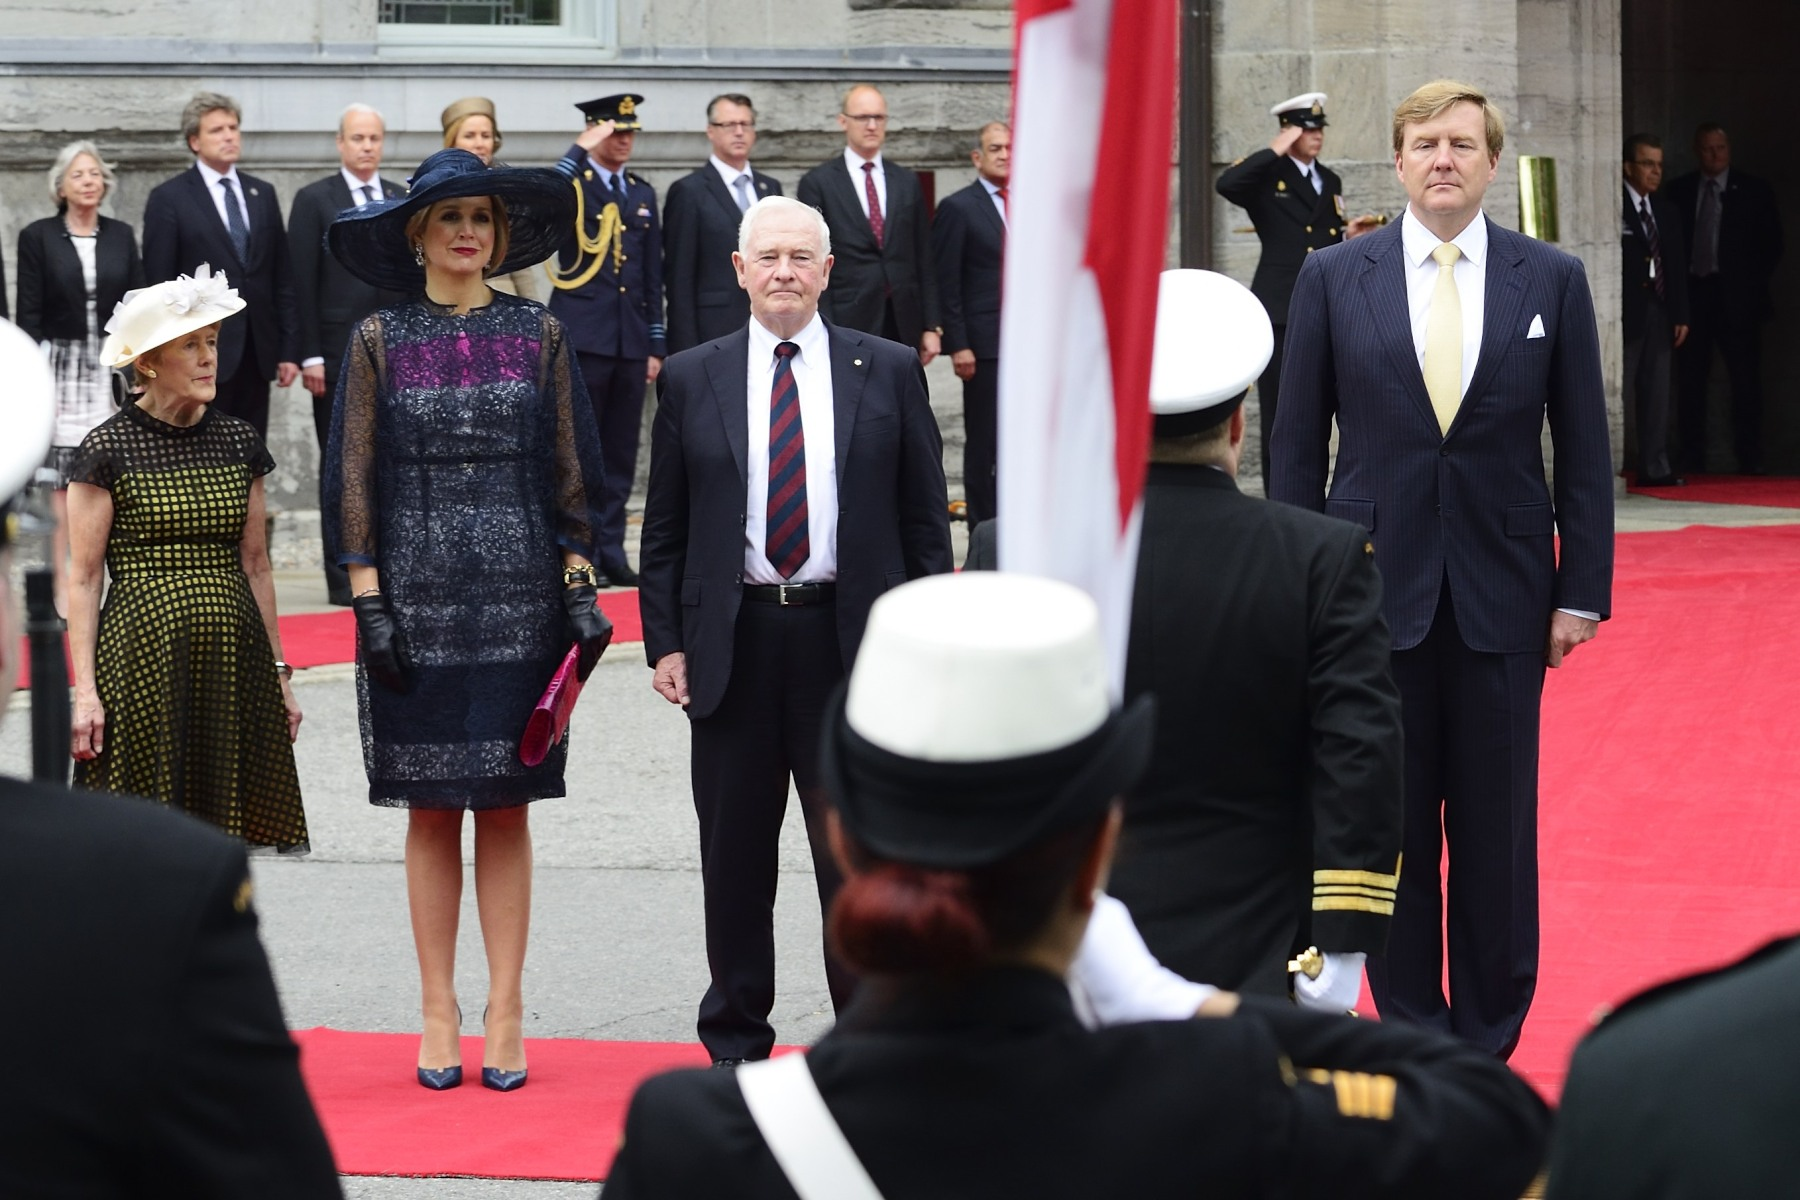 The State visit programme began with an official welcoming ceremony with military honours on the grounds of Rideau Hall, the residence of the governor general of Canada.